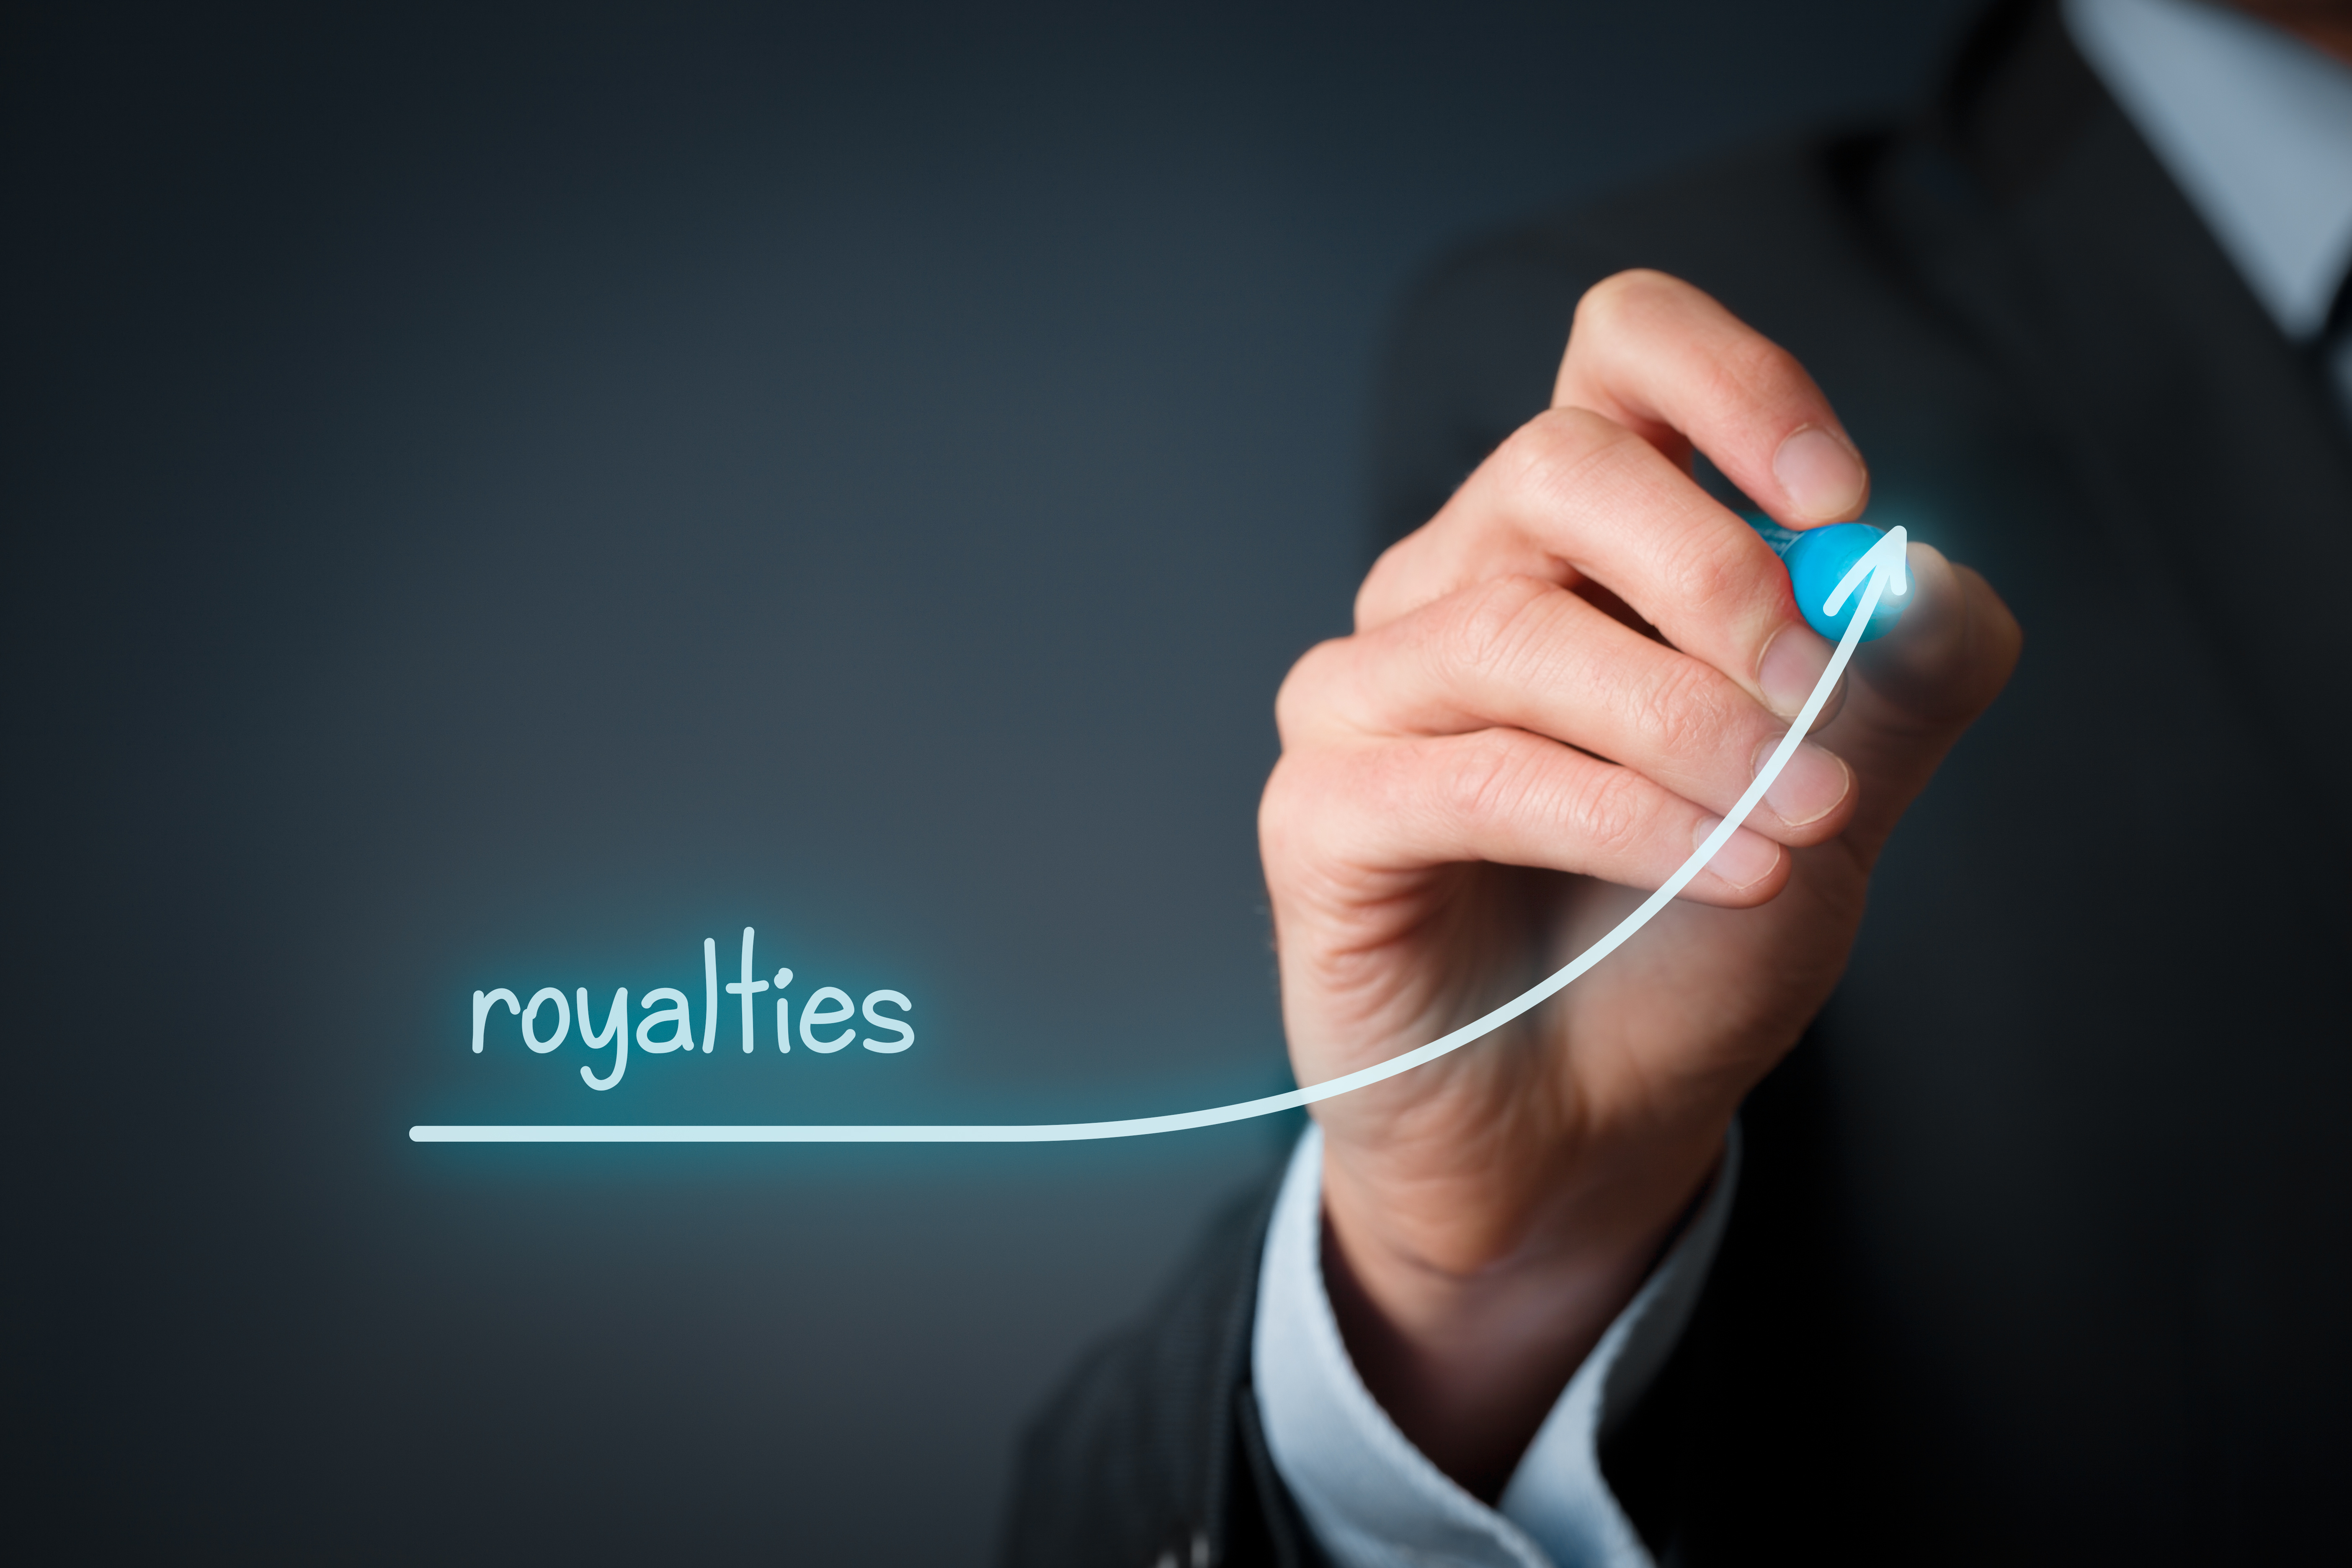 man drawing word 'royalty' with upwards arrow, royalty finance concept